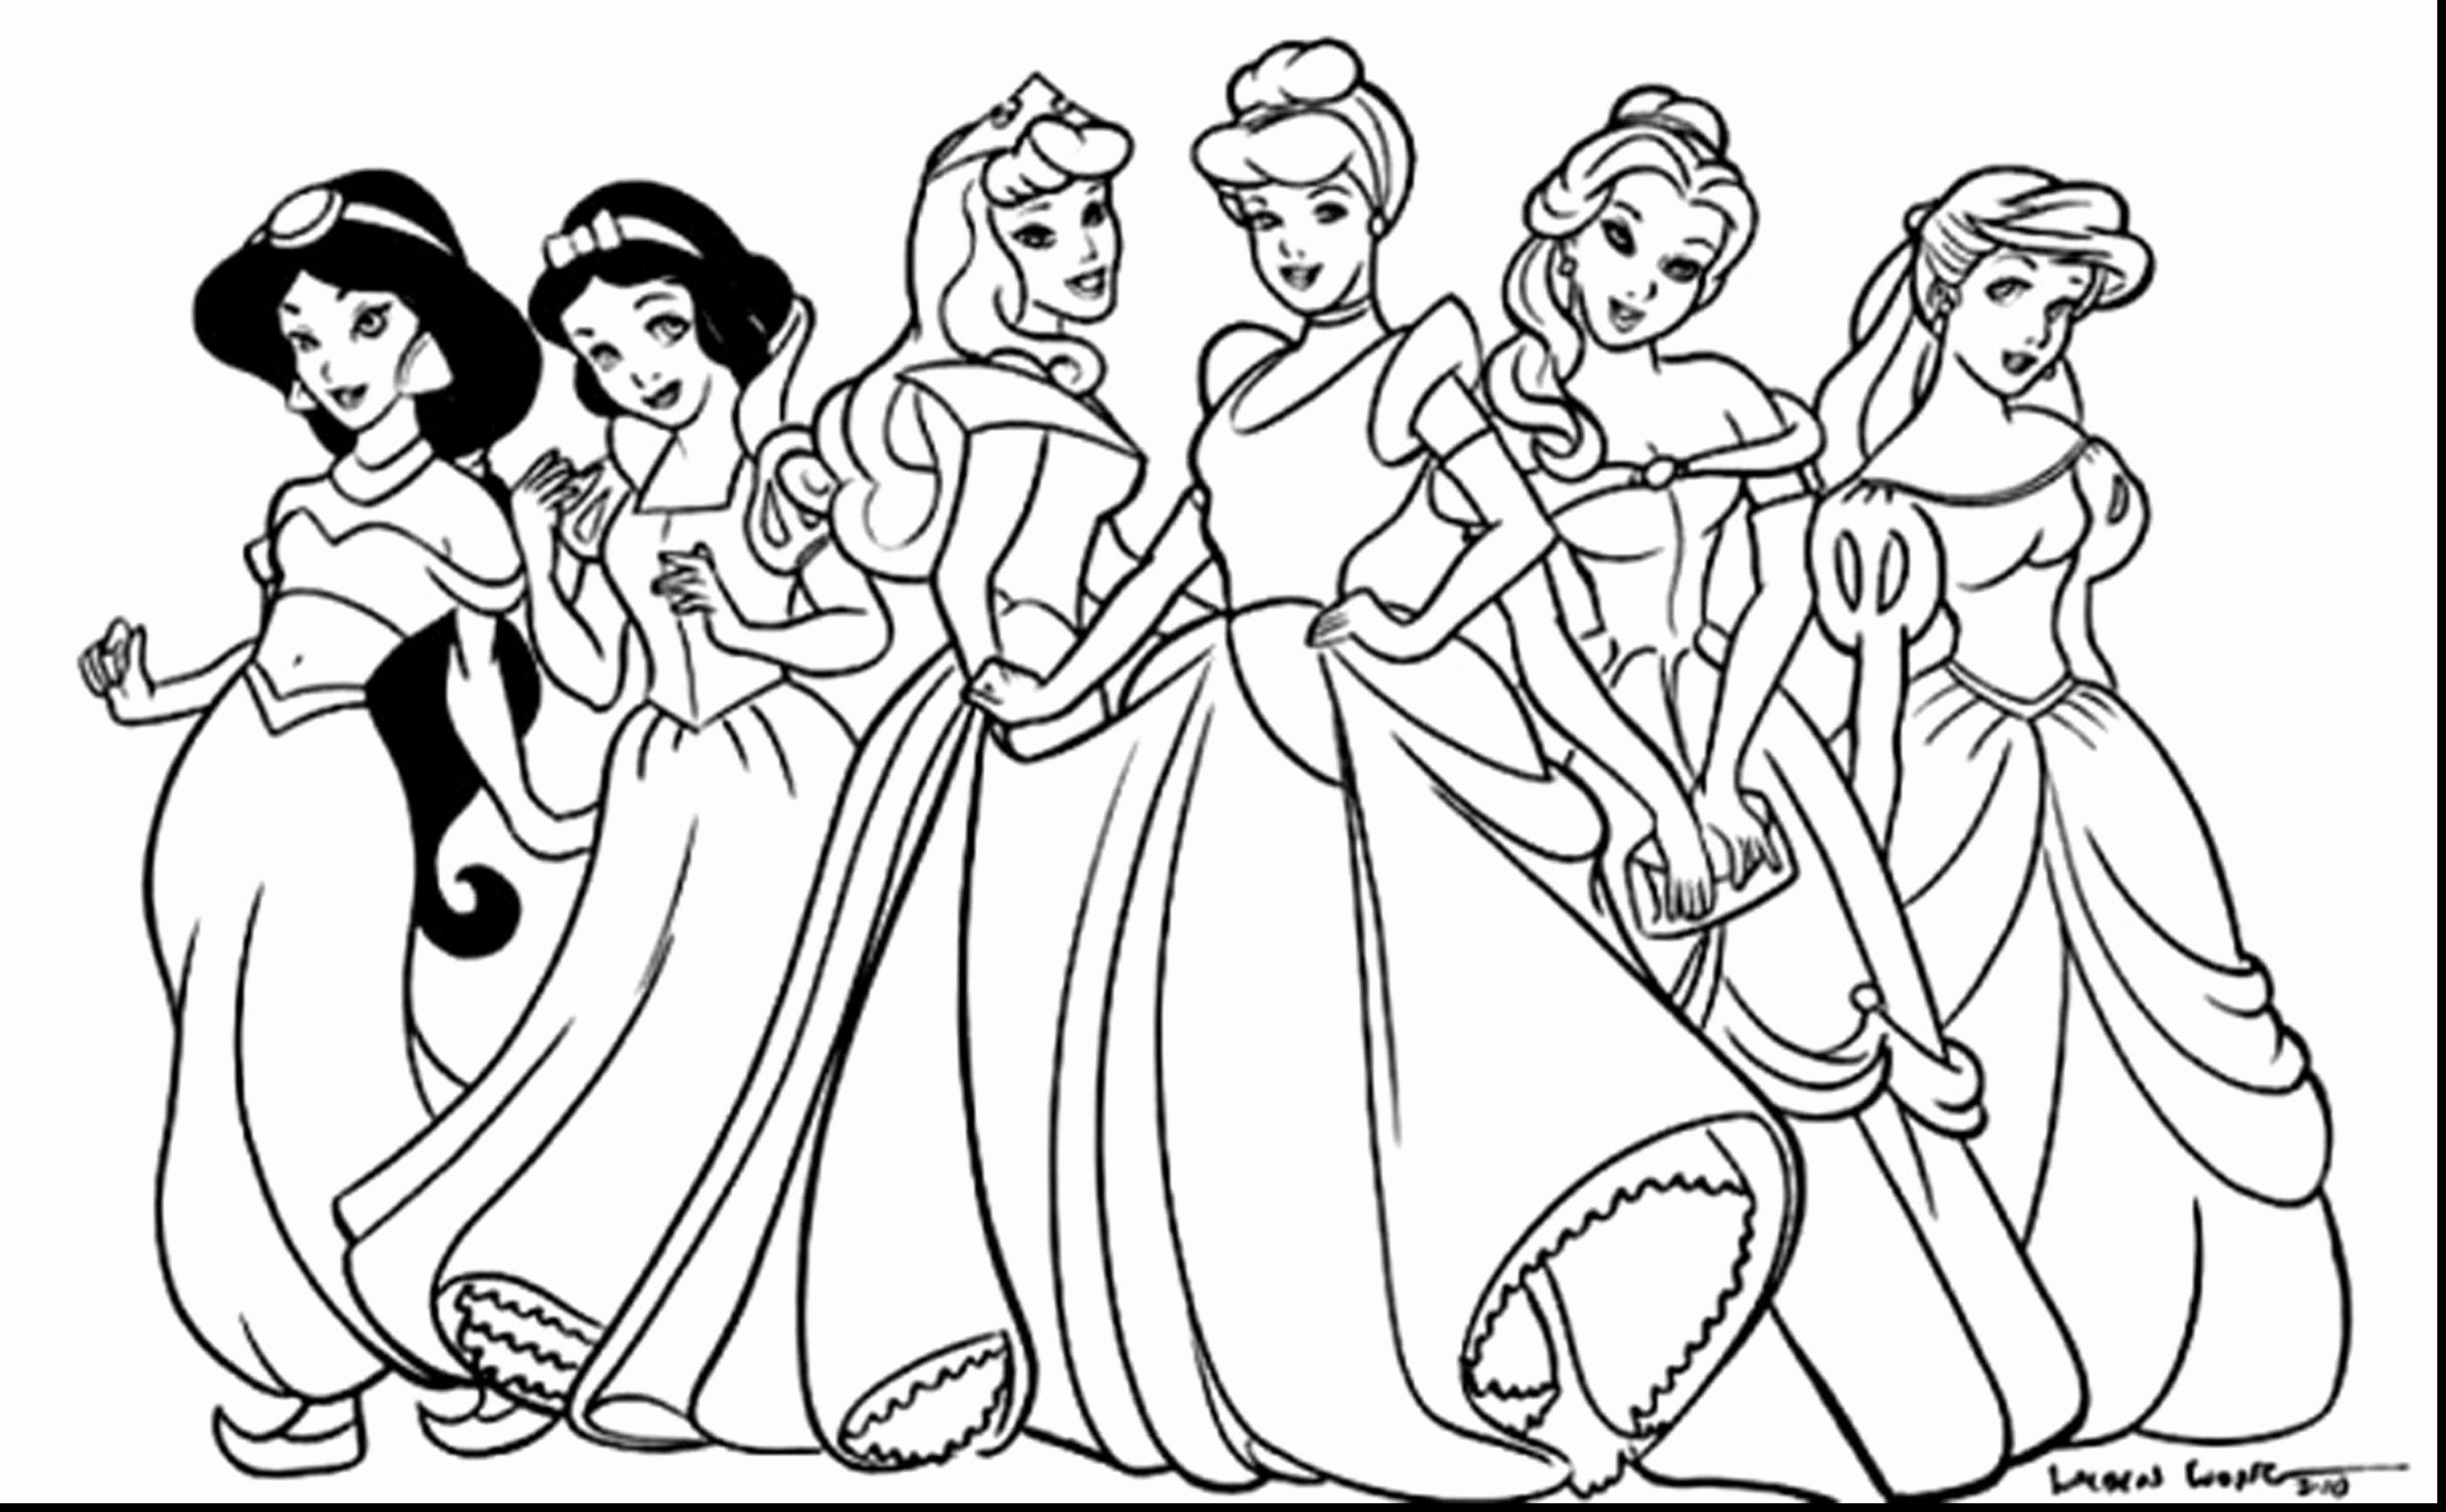 10 Barbie Coloring Books For Kids Barbie Coloring Dress Barbie Coloring Pics Disney Princess Coloring Pages Disney Princess Colors Princess Coloring Pages [ 1734 x 2805 Pixel ]